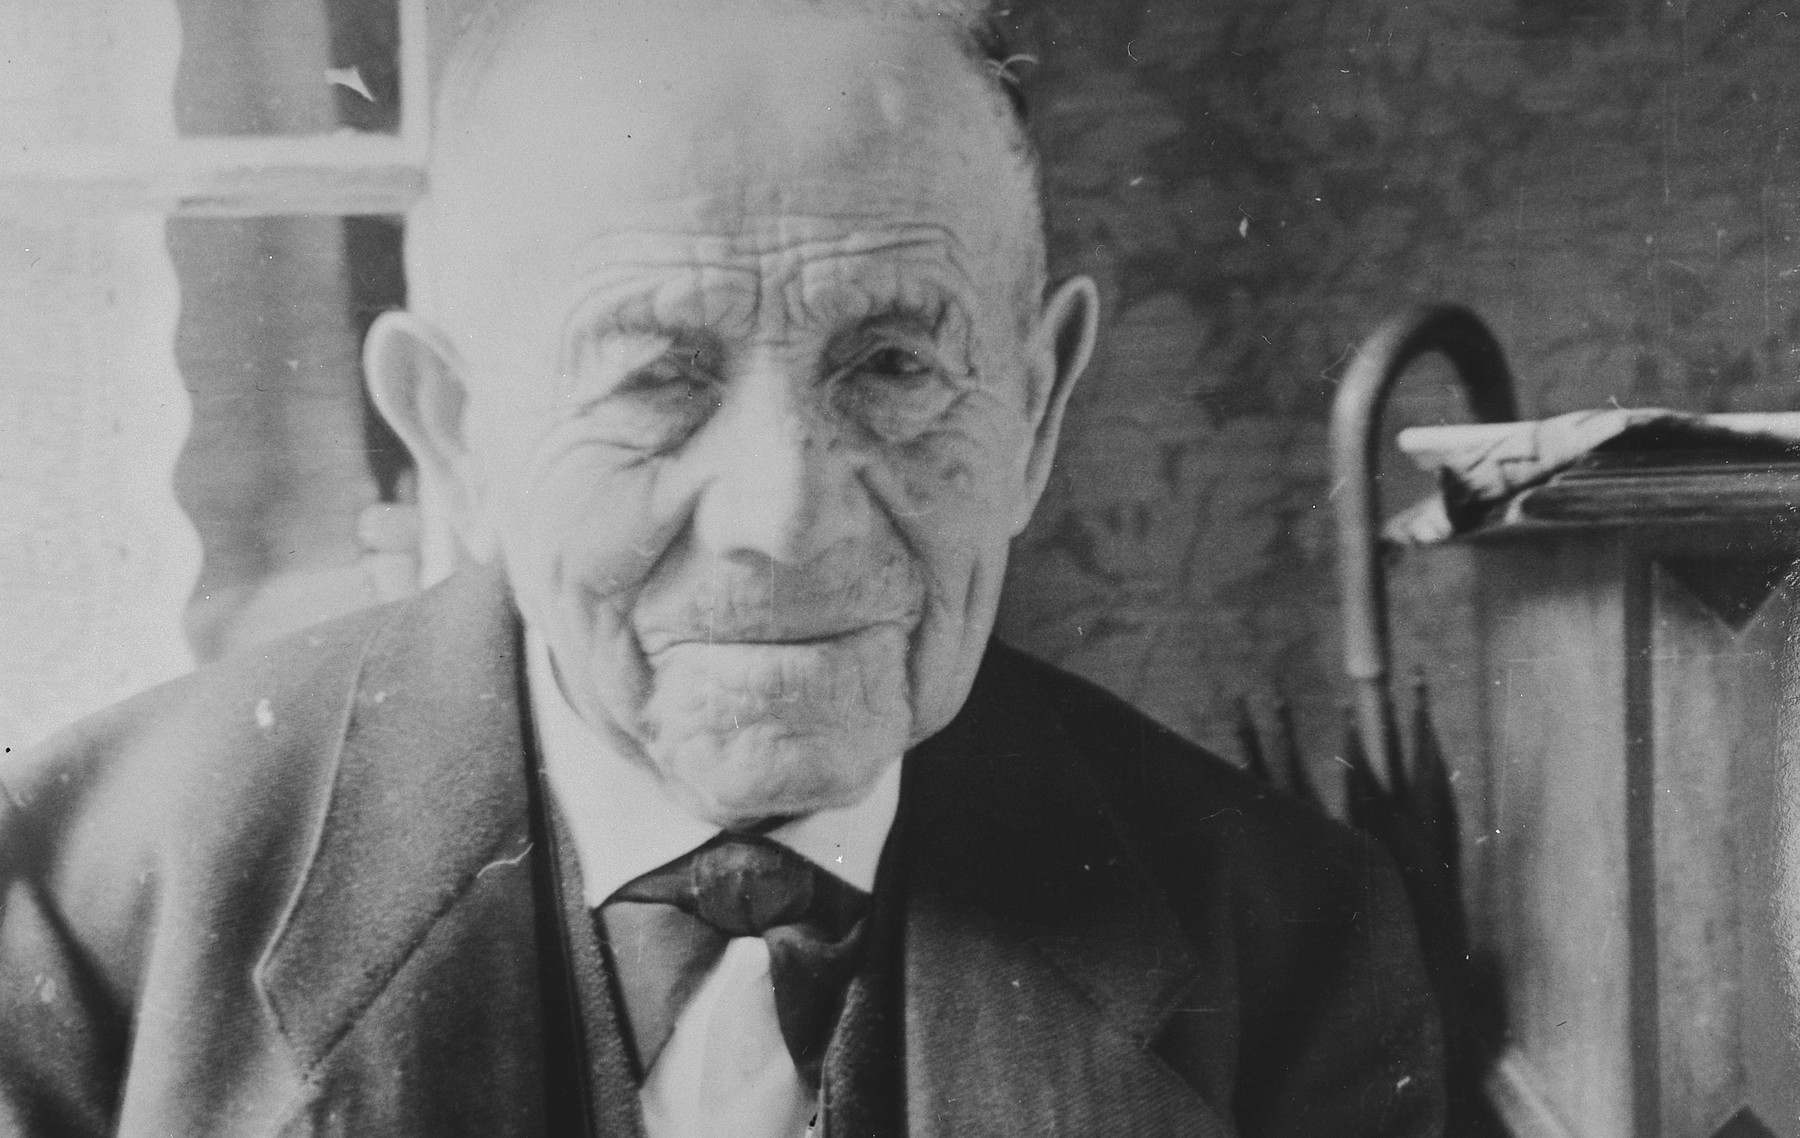 Close-up portrait of a Jewish man in Breisach, Germany.  Pictured is Leopold Geismar.  He was a cousin of the Bährs.  He died in the Jewish Home for the Elderly in Gailingen in July 1939.  This is part of series of photographs taken of the Breisach Jewish community on their way to and from synagogue in 1937.  In October 1940 the entire community was deported to the Gurs internment camp in southern France.